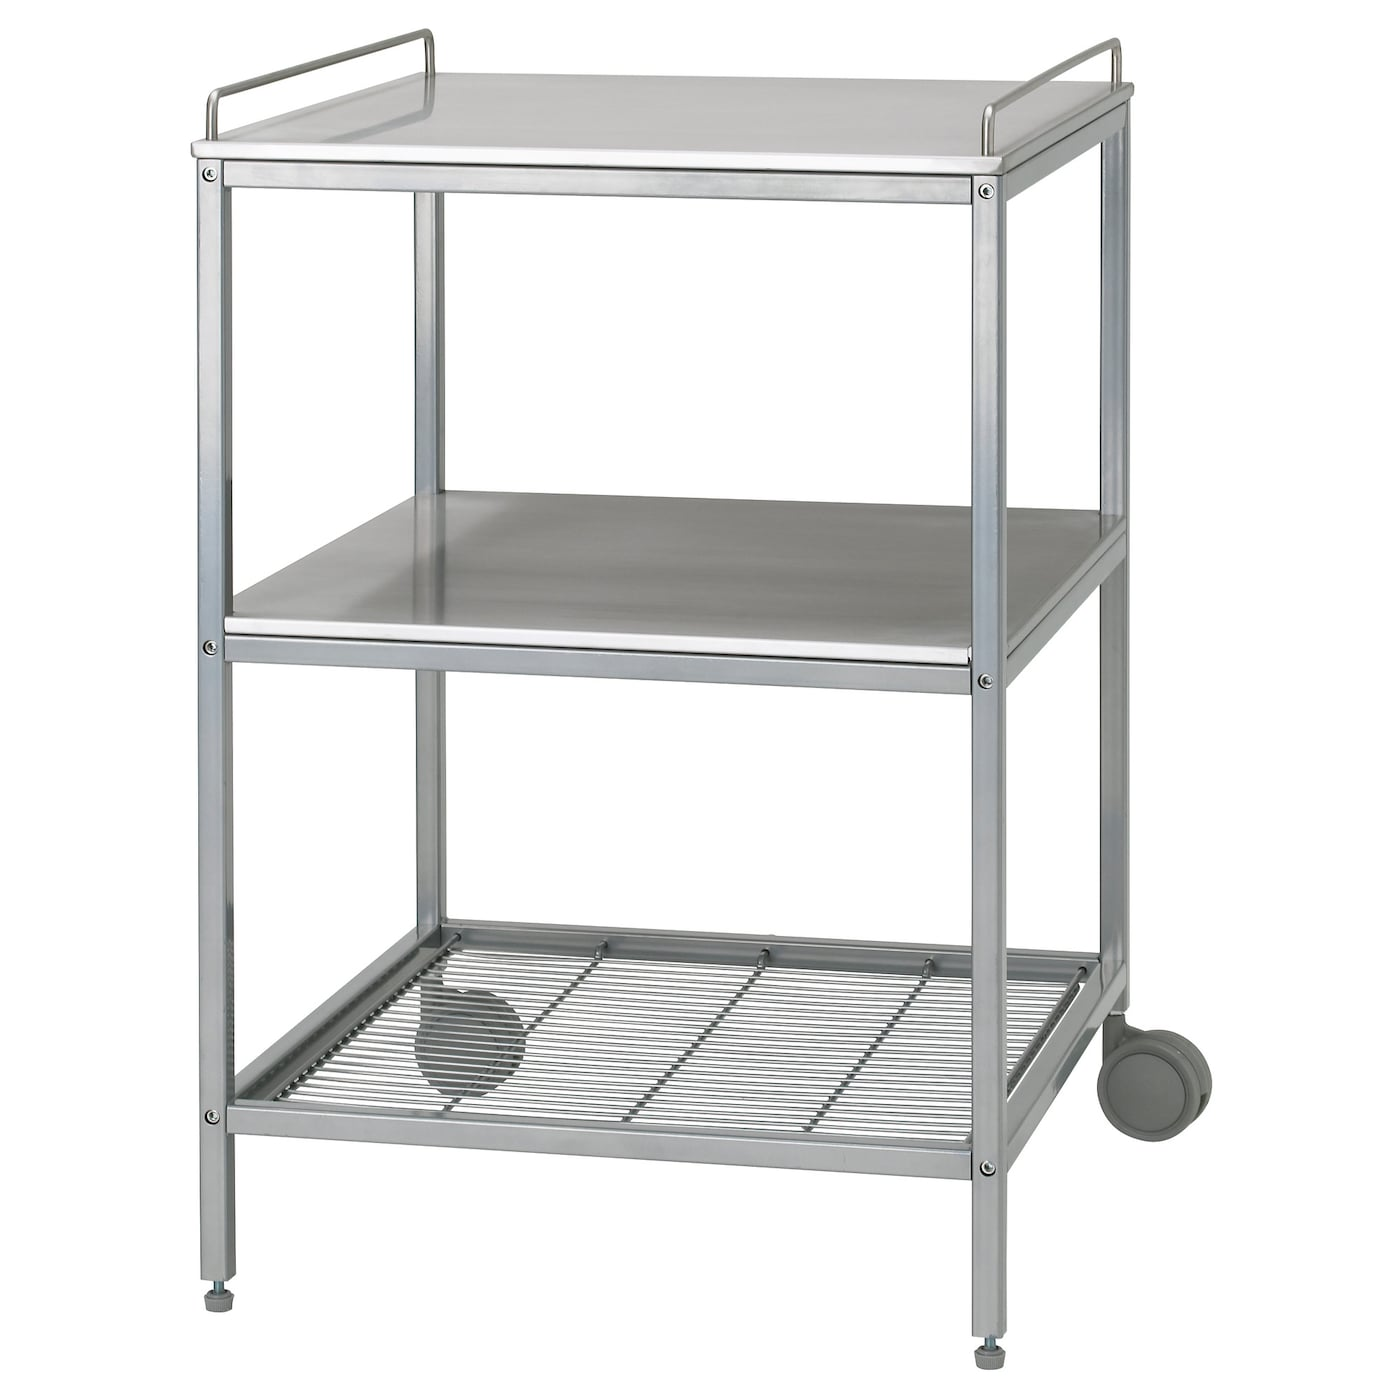 IKEA UDDEN kitchen trolley Gives you extra storage in your kitchen.